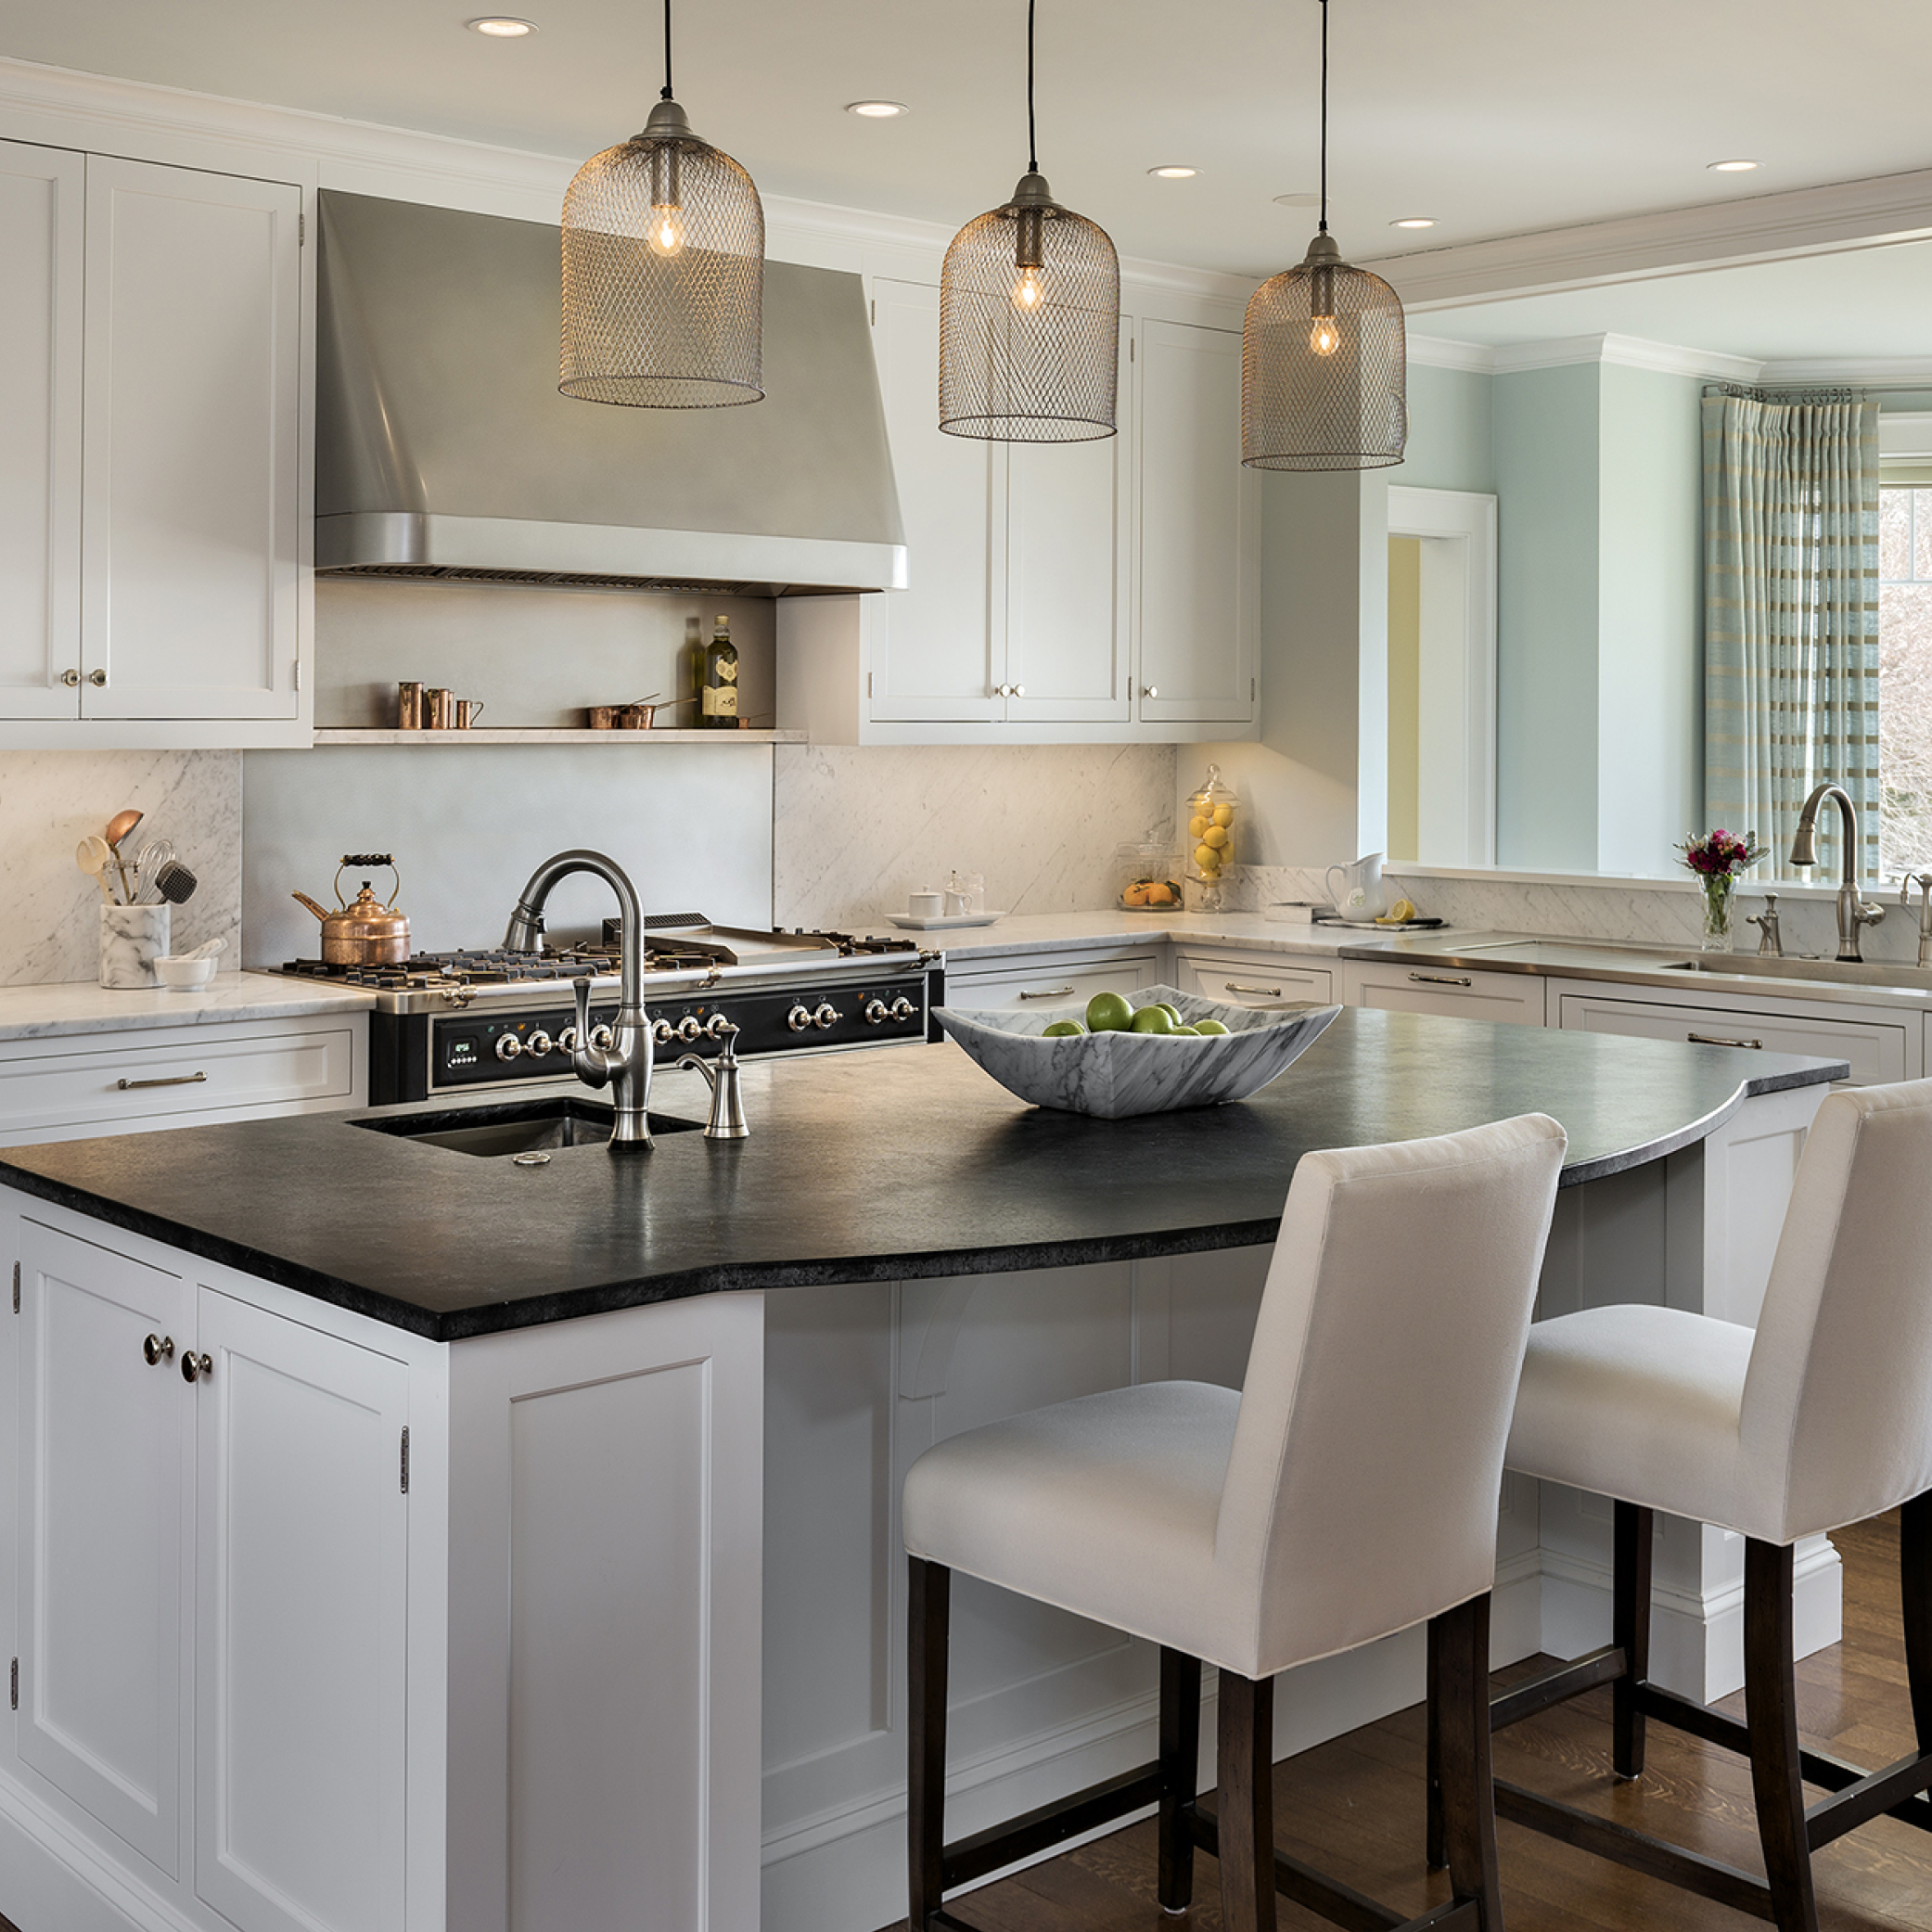 A large and bright kitchen in Cumberland Foreside with unique sconces, and marble countertops